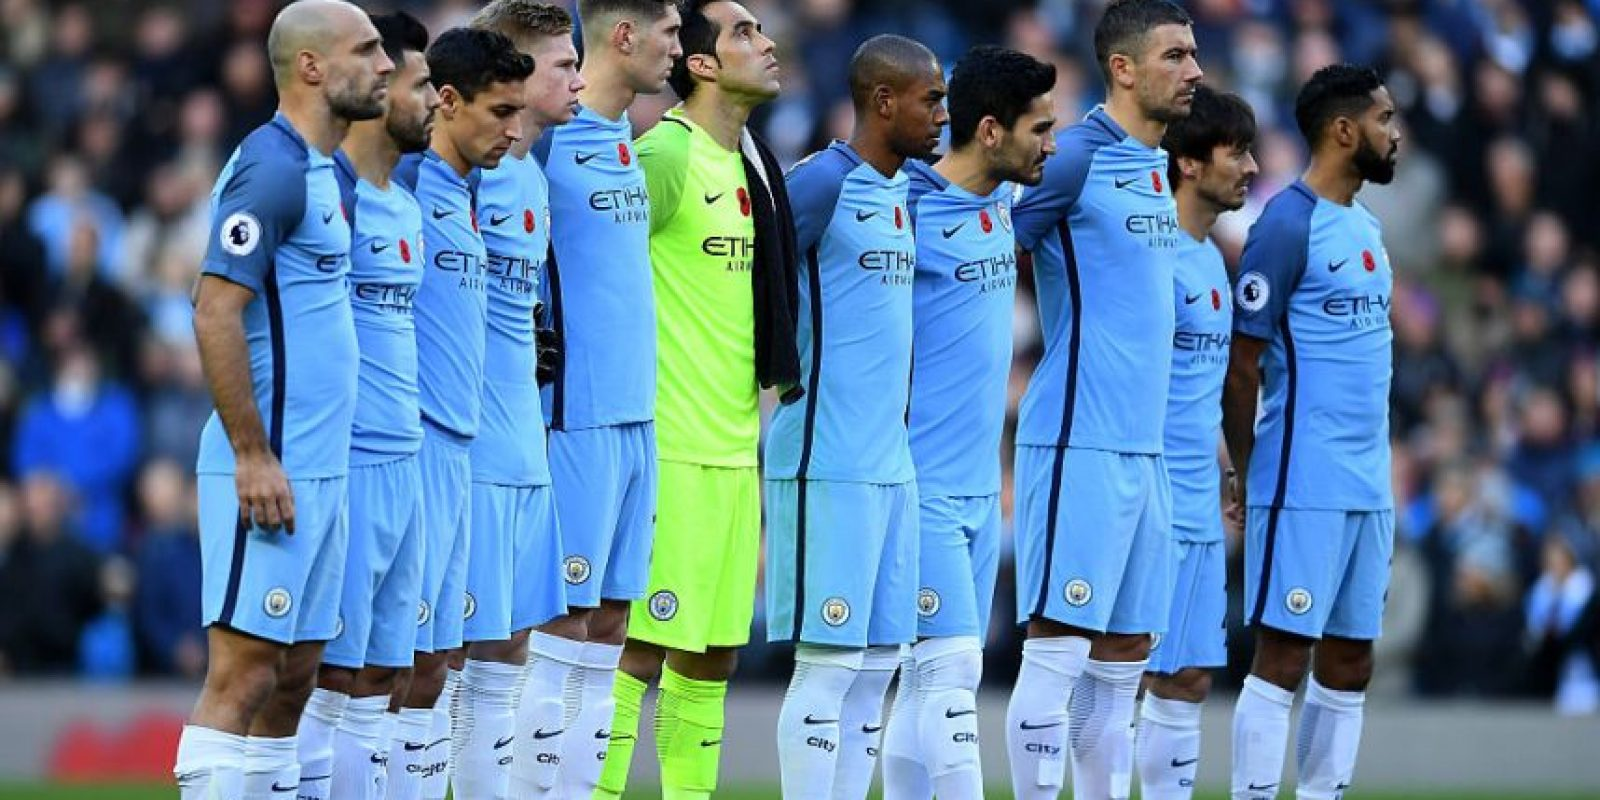 9.- Manchester City (Premier League) – 7,158,462 millones de dólares de sueldo anual en promedio Foto: Getty Images